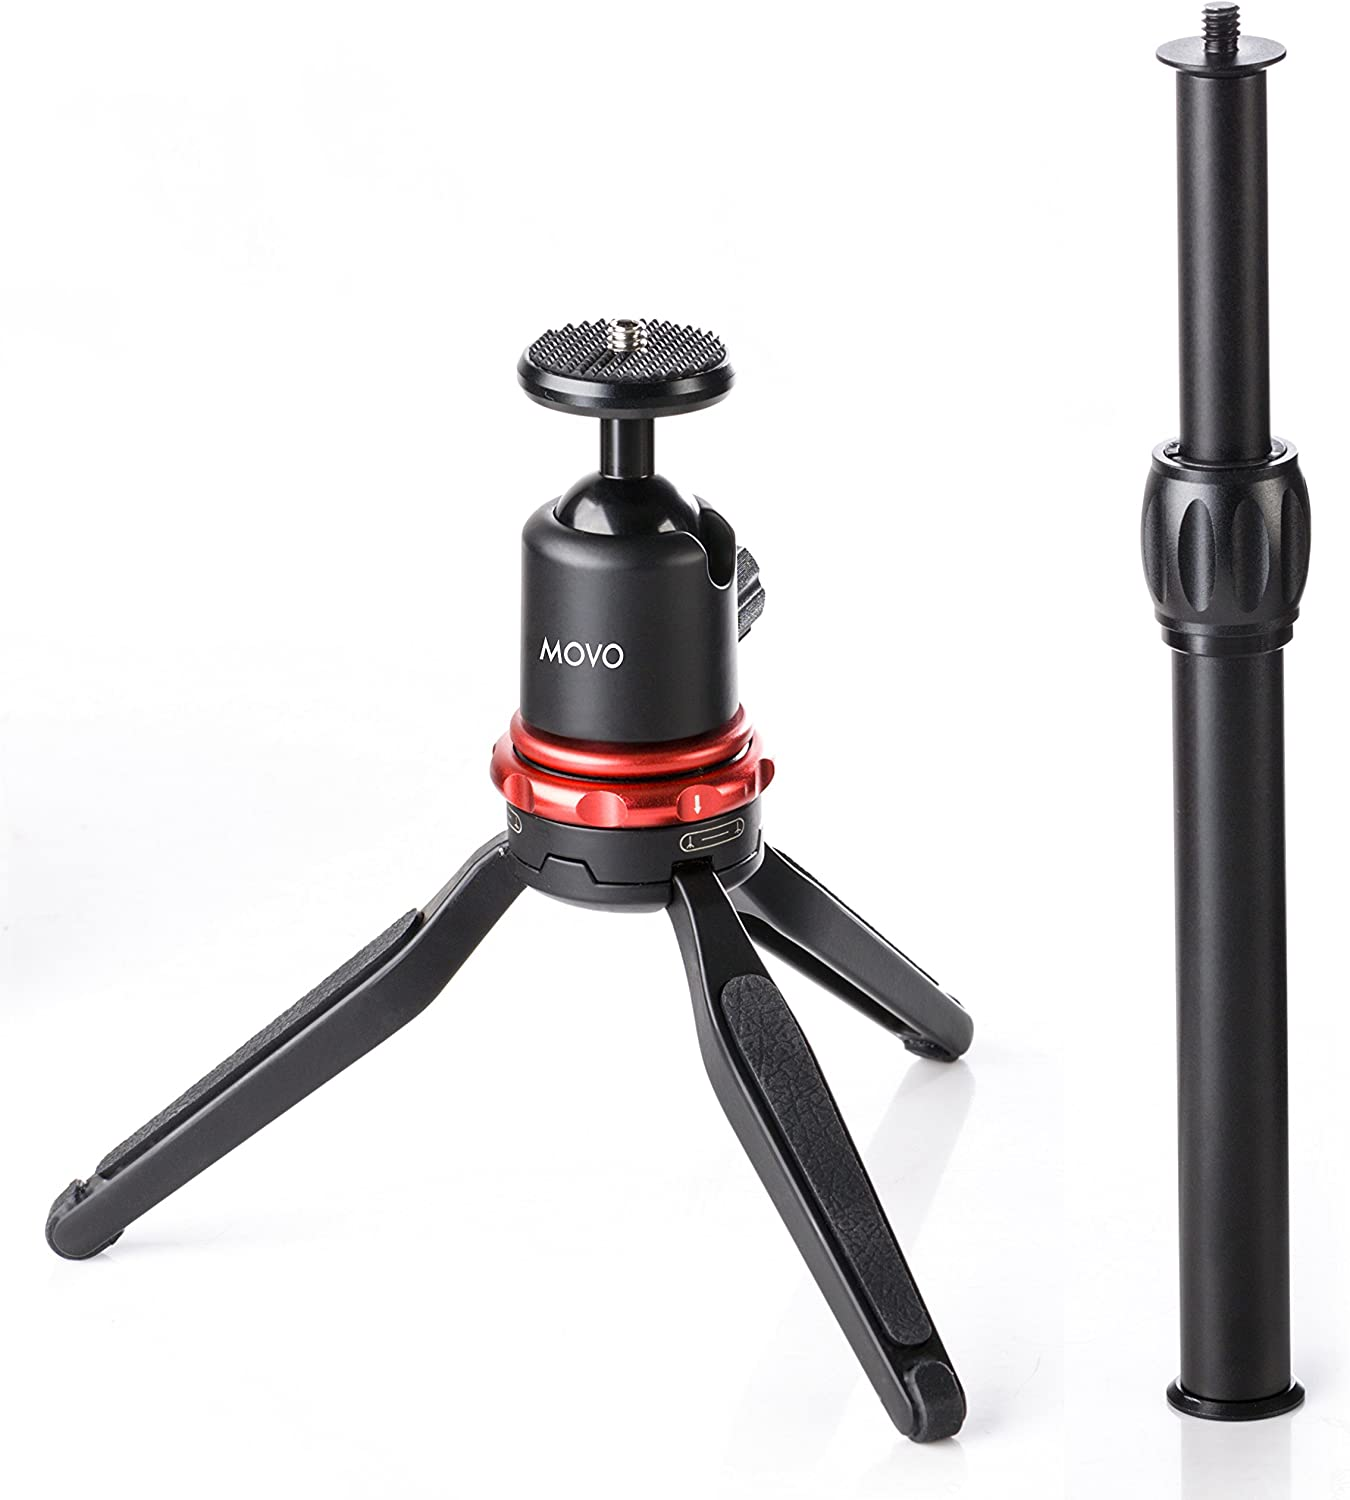 Movo Universal Mini Camera Tripod with Extendable Pole (MV-T1) Adjustable Head, Heavy-Duty Aluminum Travel Stand for DSLR, Mirrorless, GoPro, Smartphones, Compact, Portable